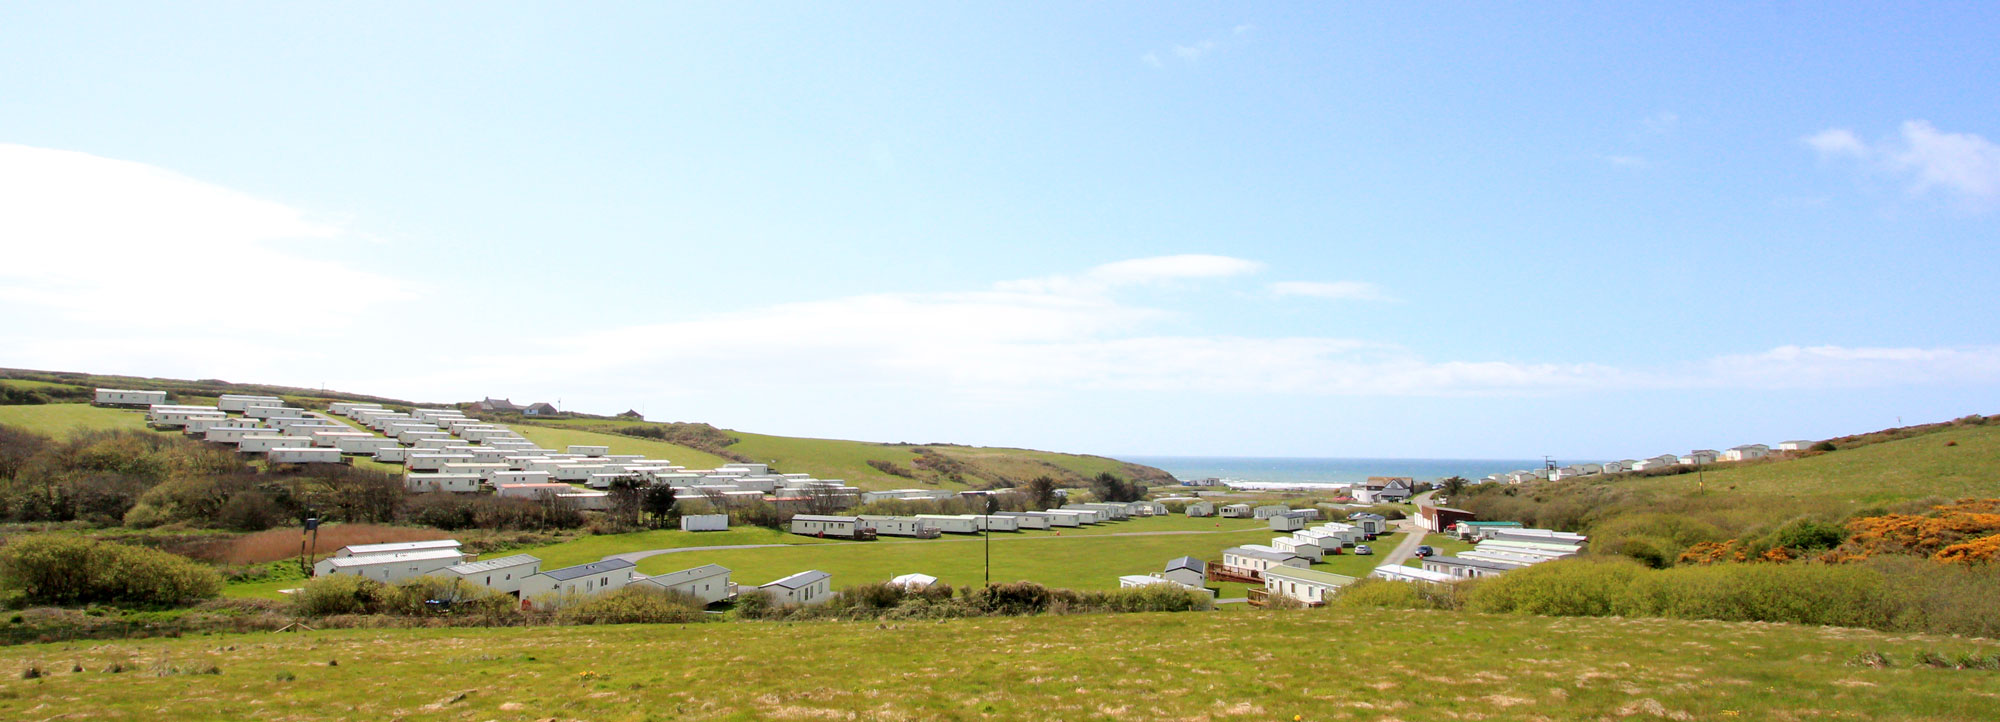 The Sun is out at Newgale